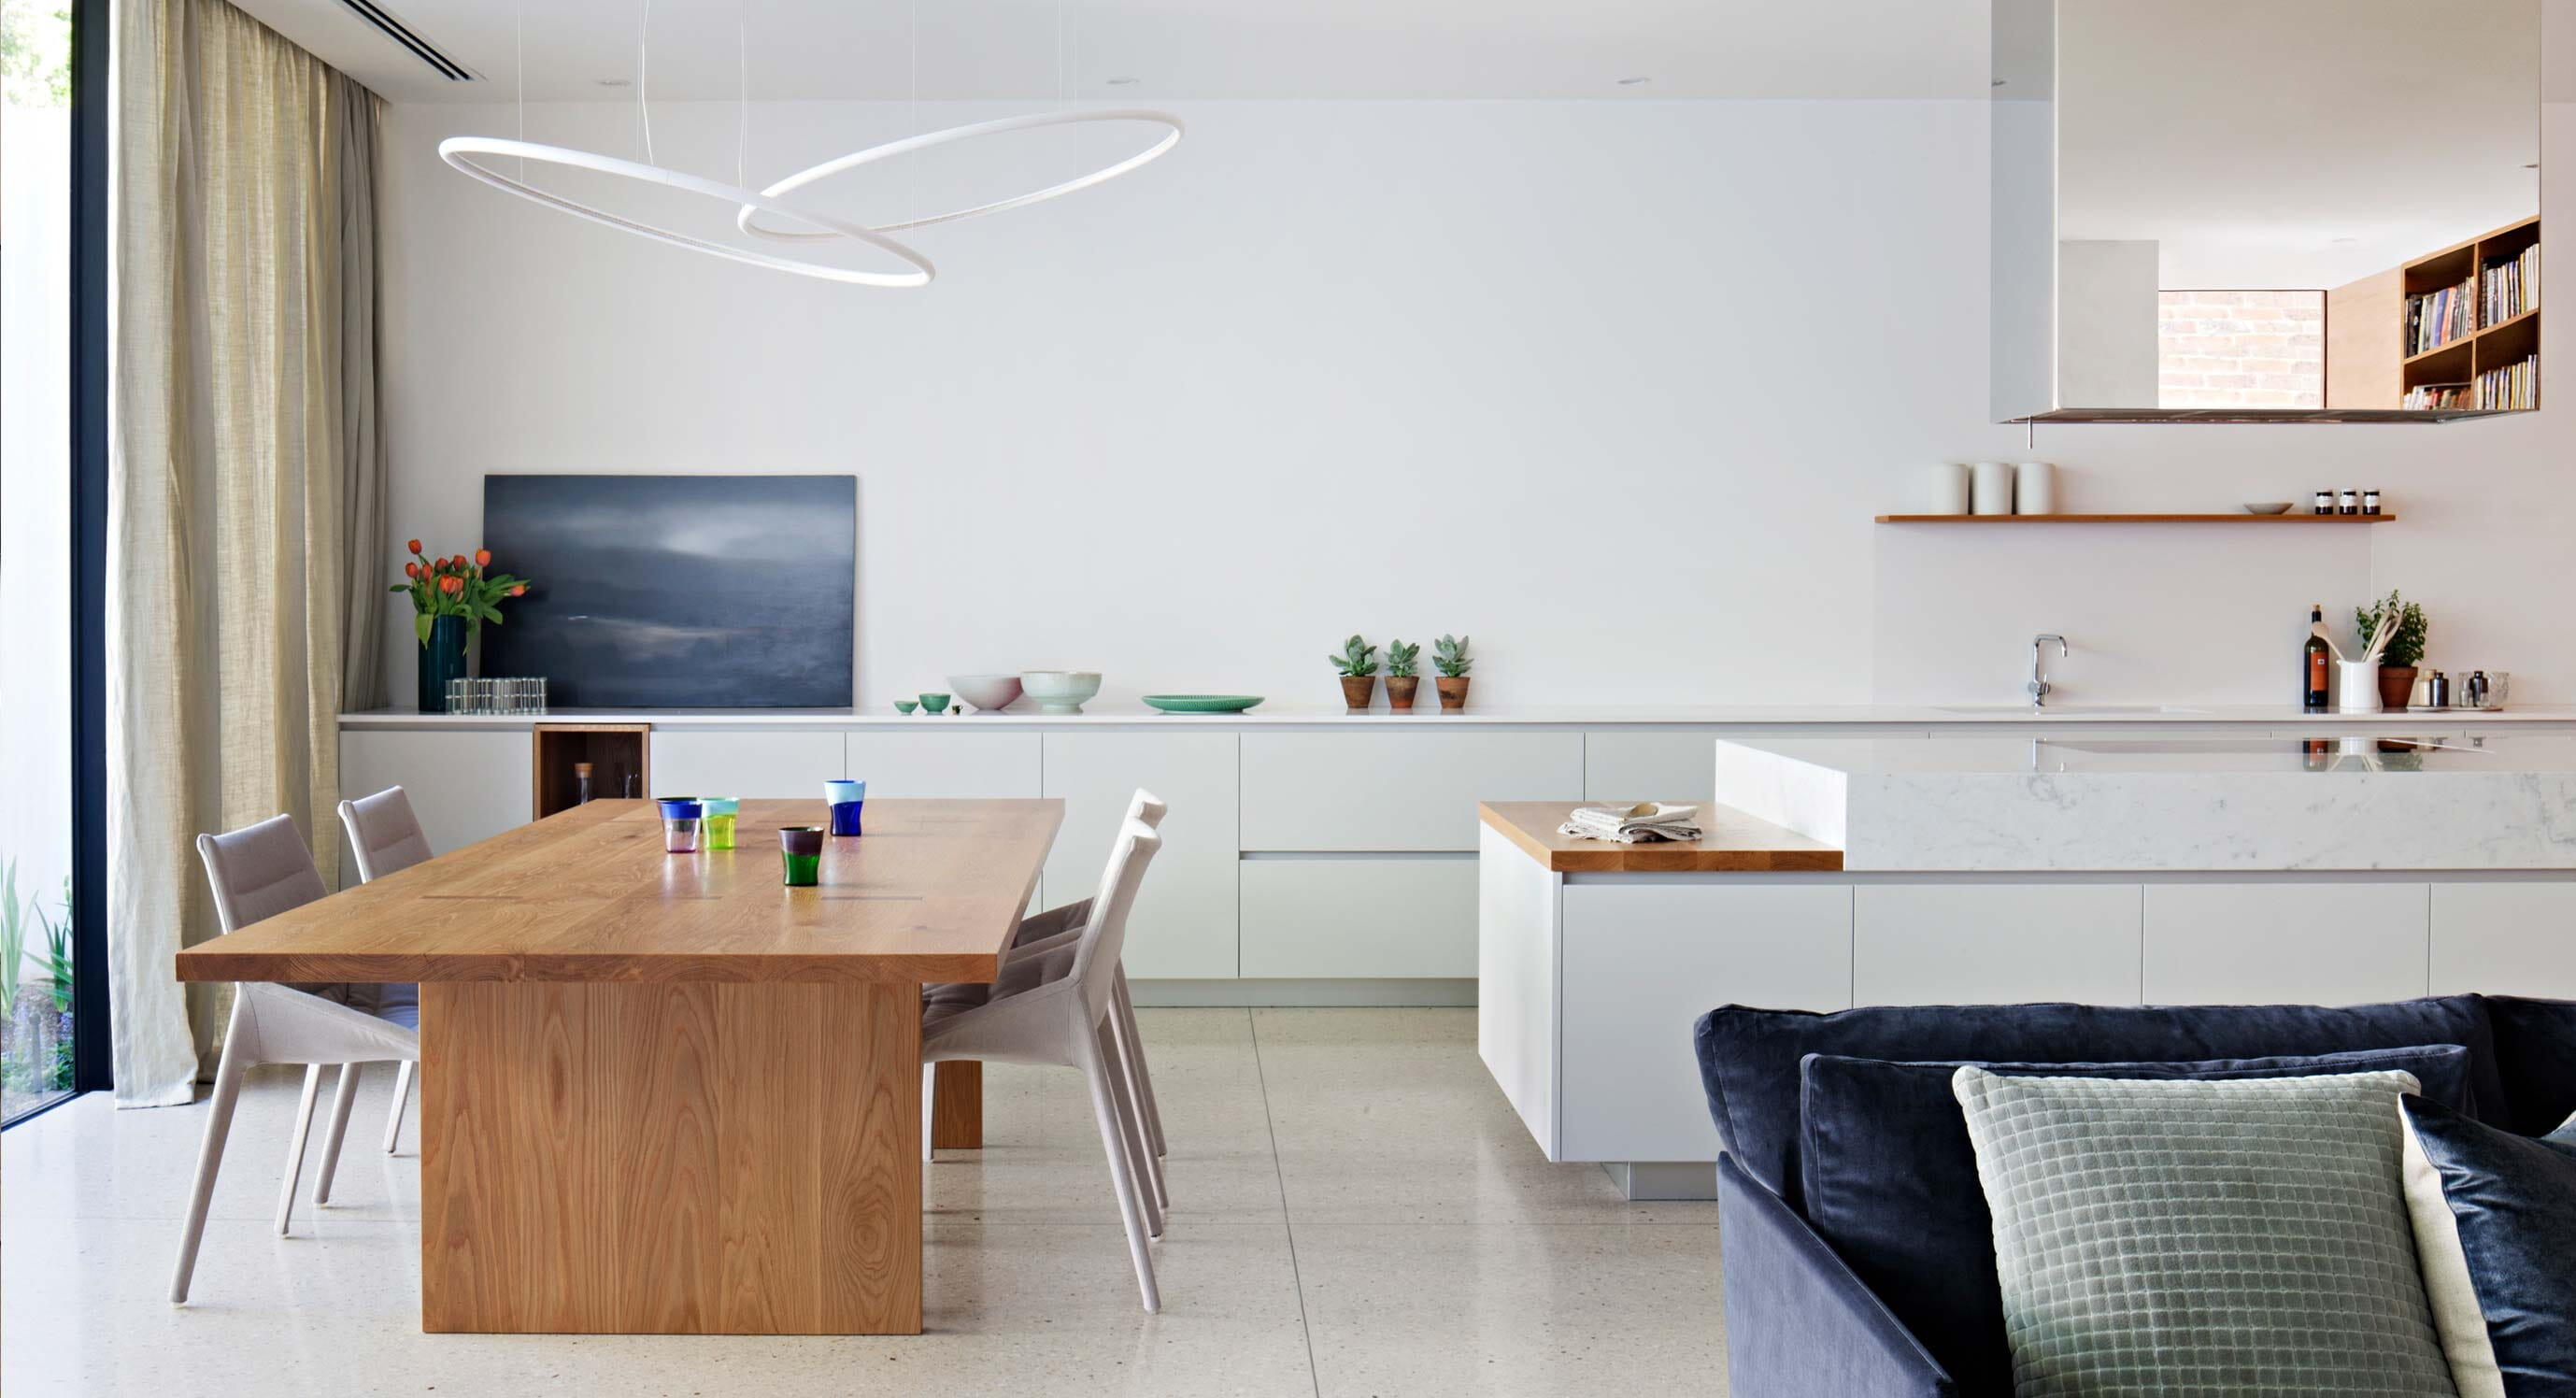 Victoria Gardens House Blends Functions And Styles